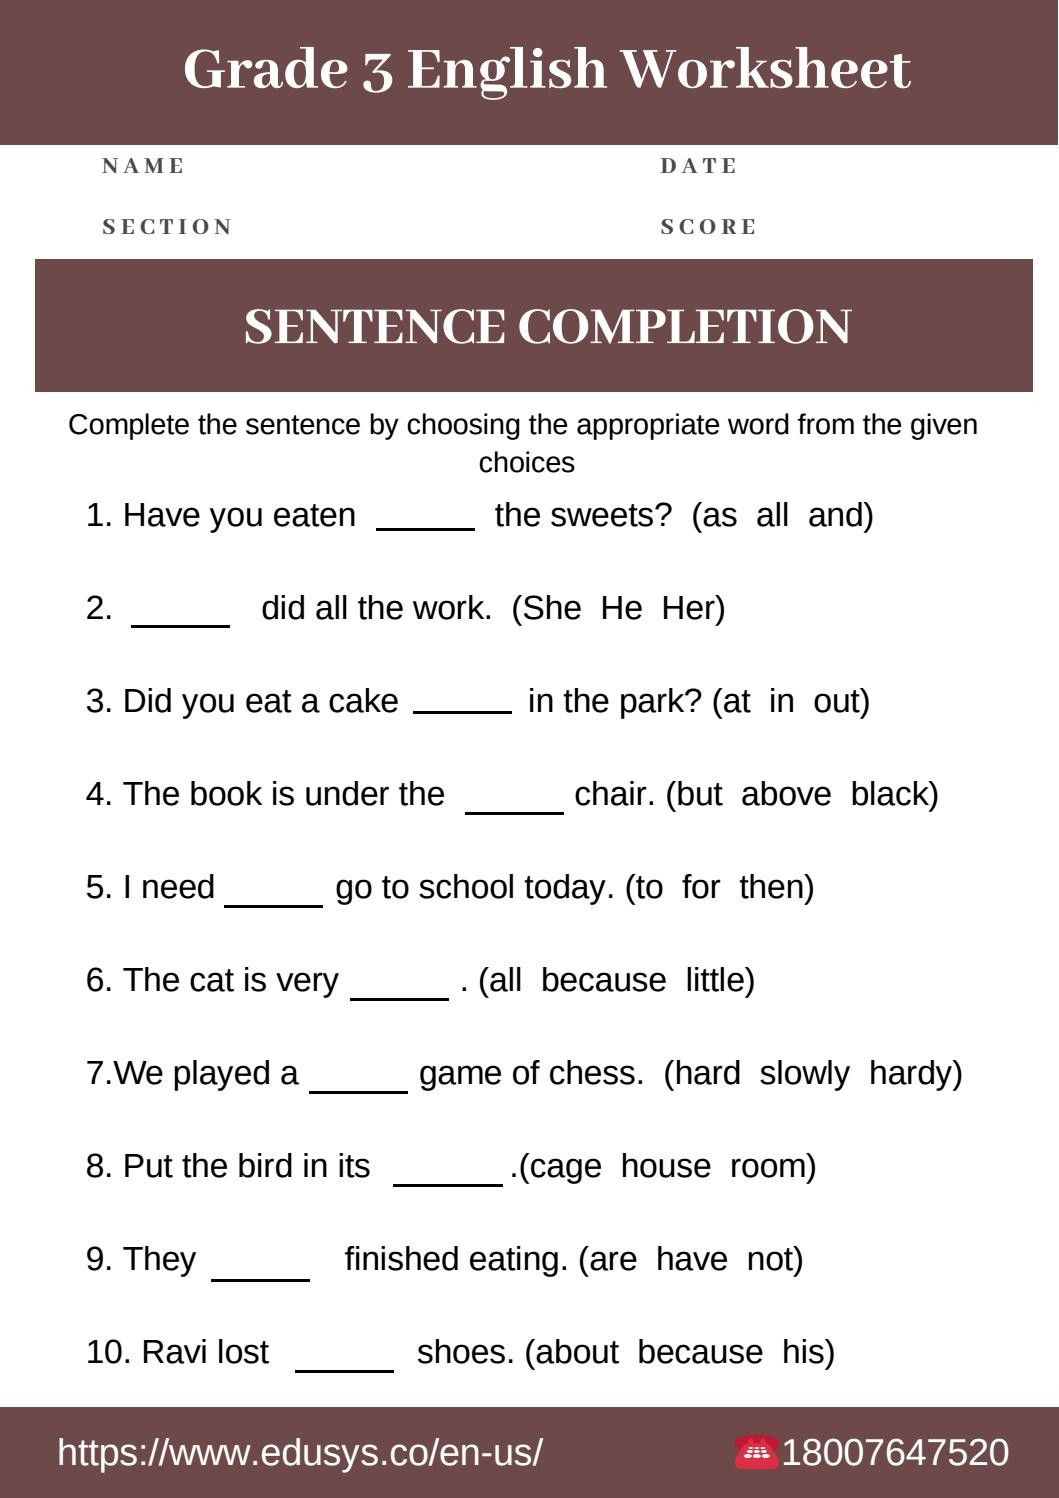 7th Grade Grammar Worksheets Pdf 3rd Grade English Grammar Worksheet Free Pdf by Nithya issuu